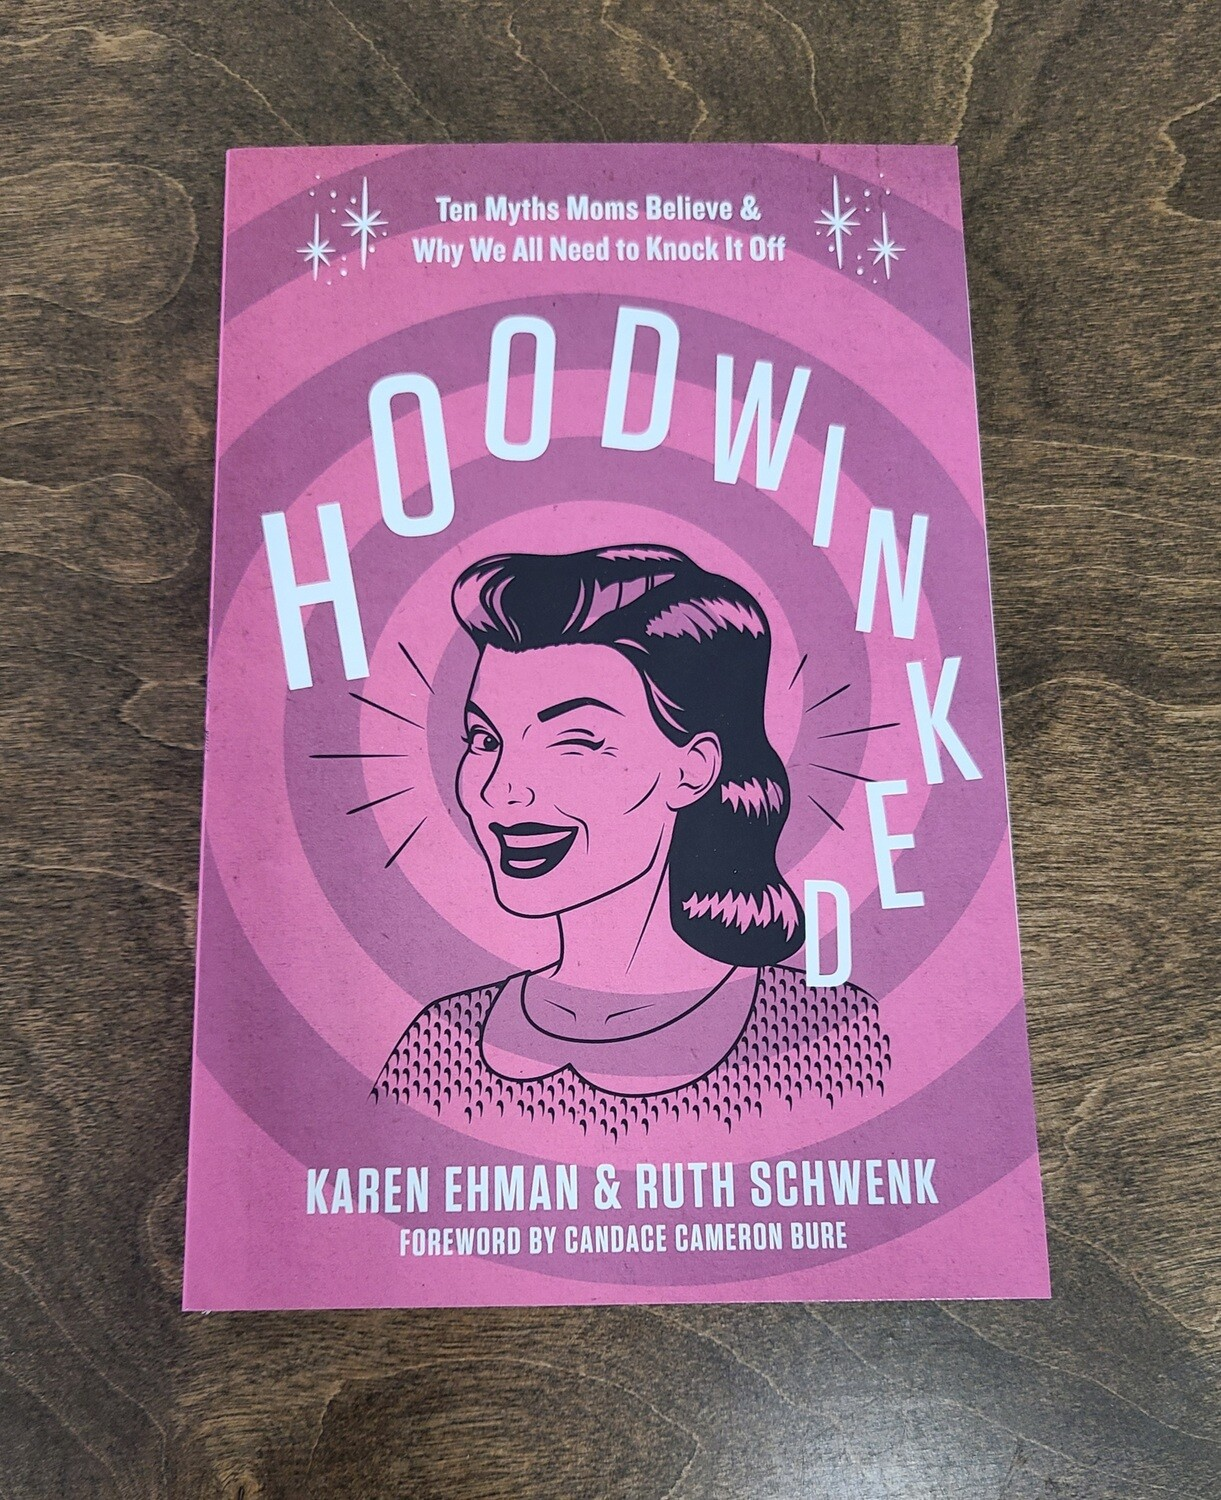 Hoodwinked: 10 Myths Moms Believe and Why We all Need to Knock it Off by Karen Ehman and Ruth Schwenk